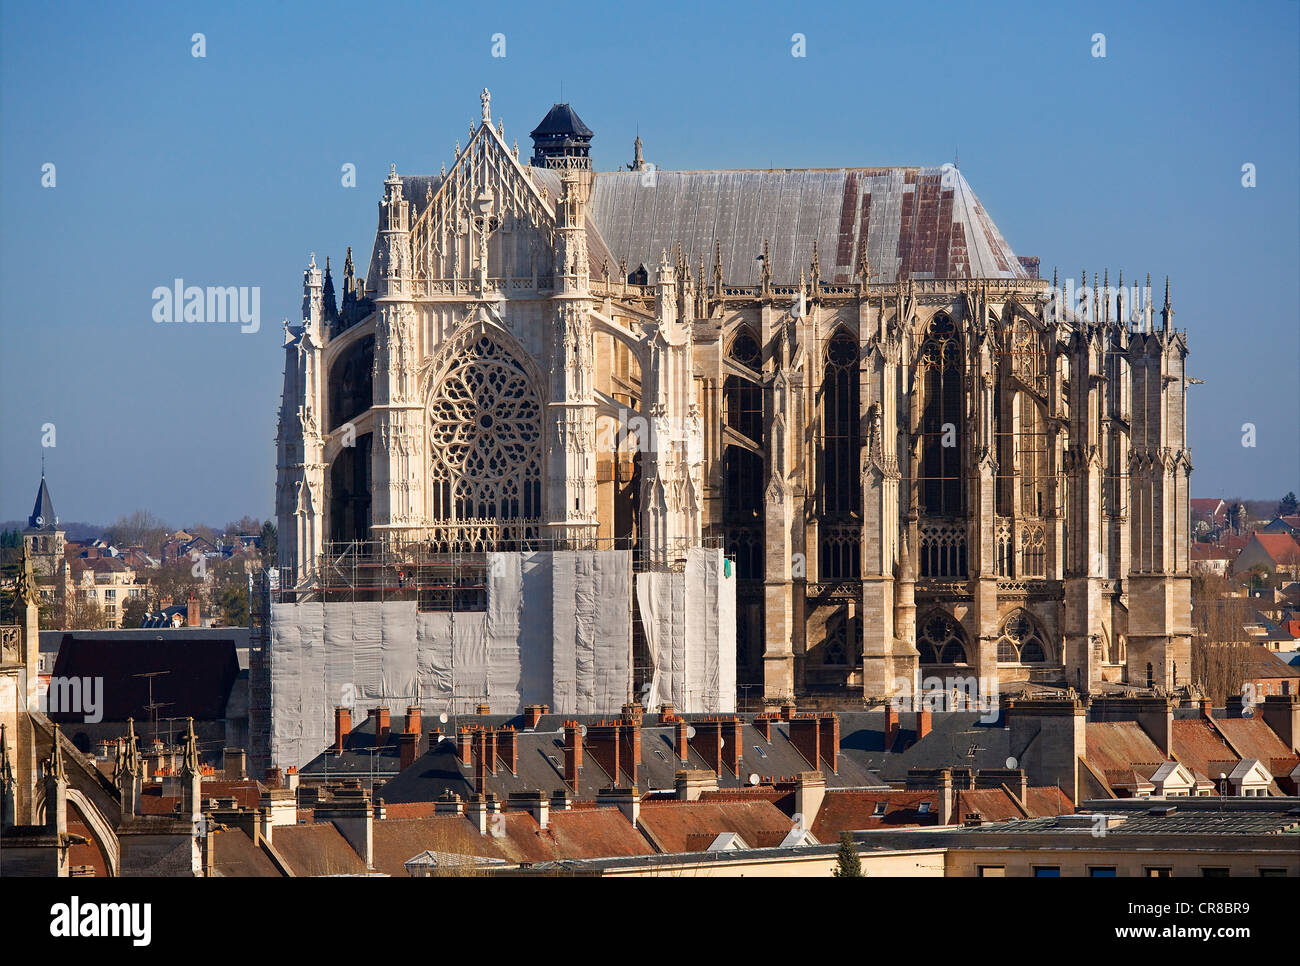 France, Oise, Beauvais, St Pierre Cathedral - Stock Image